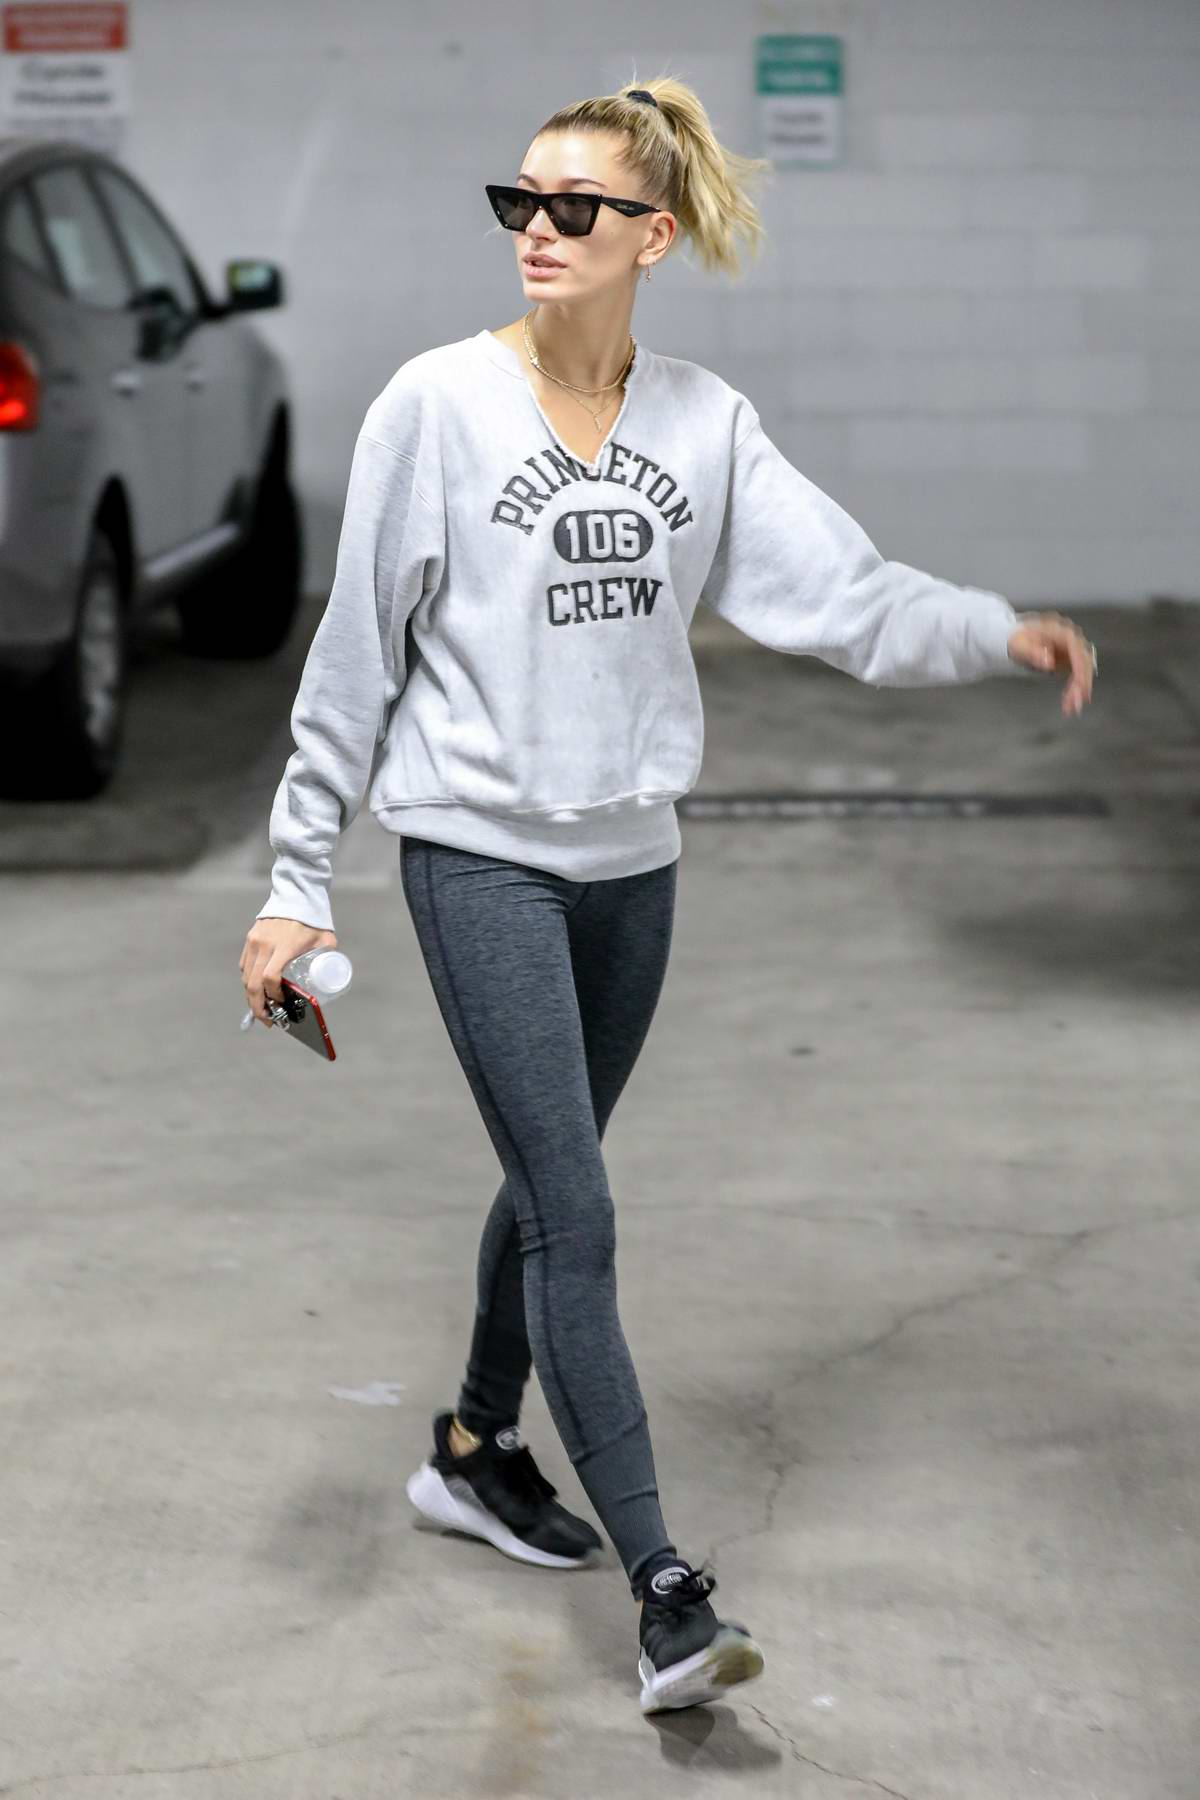 Hailey Baldwin wears a Princeton Crew sweatshirt and grey leggings as she arrives for a pilates class in Studio City, Los Angeles